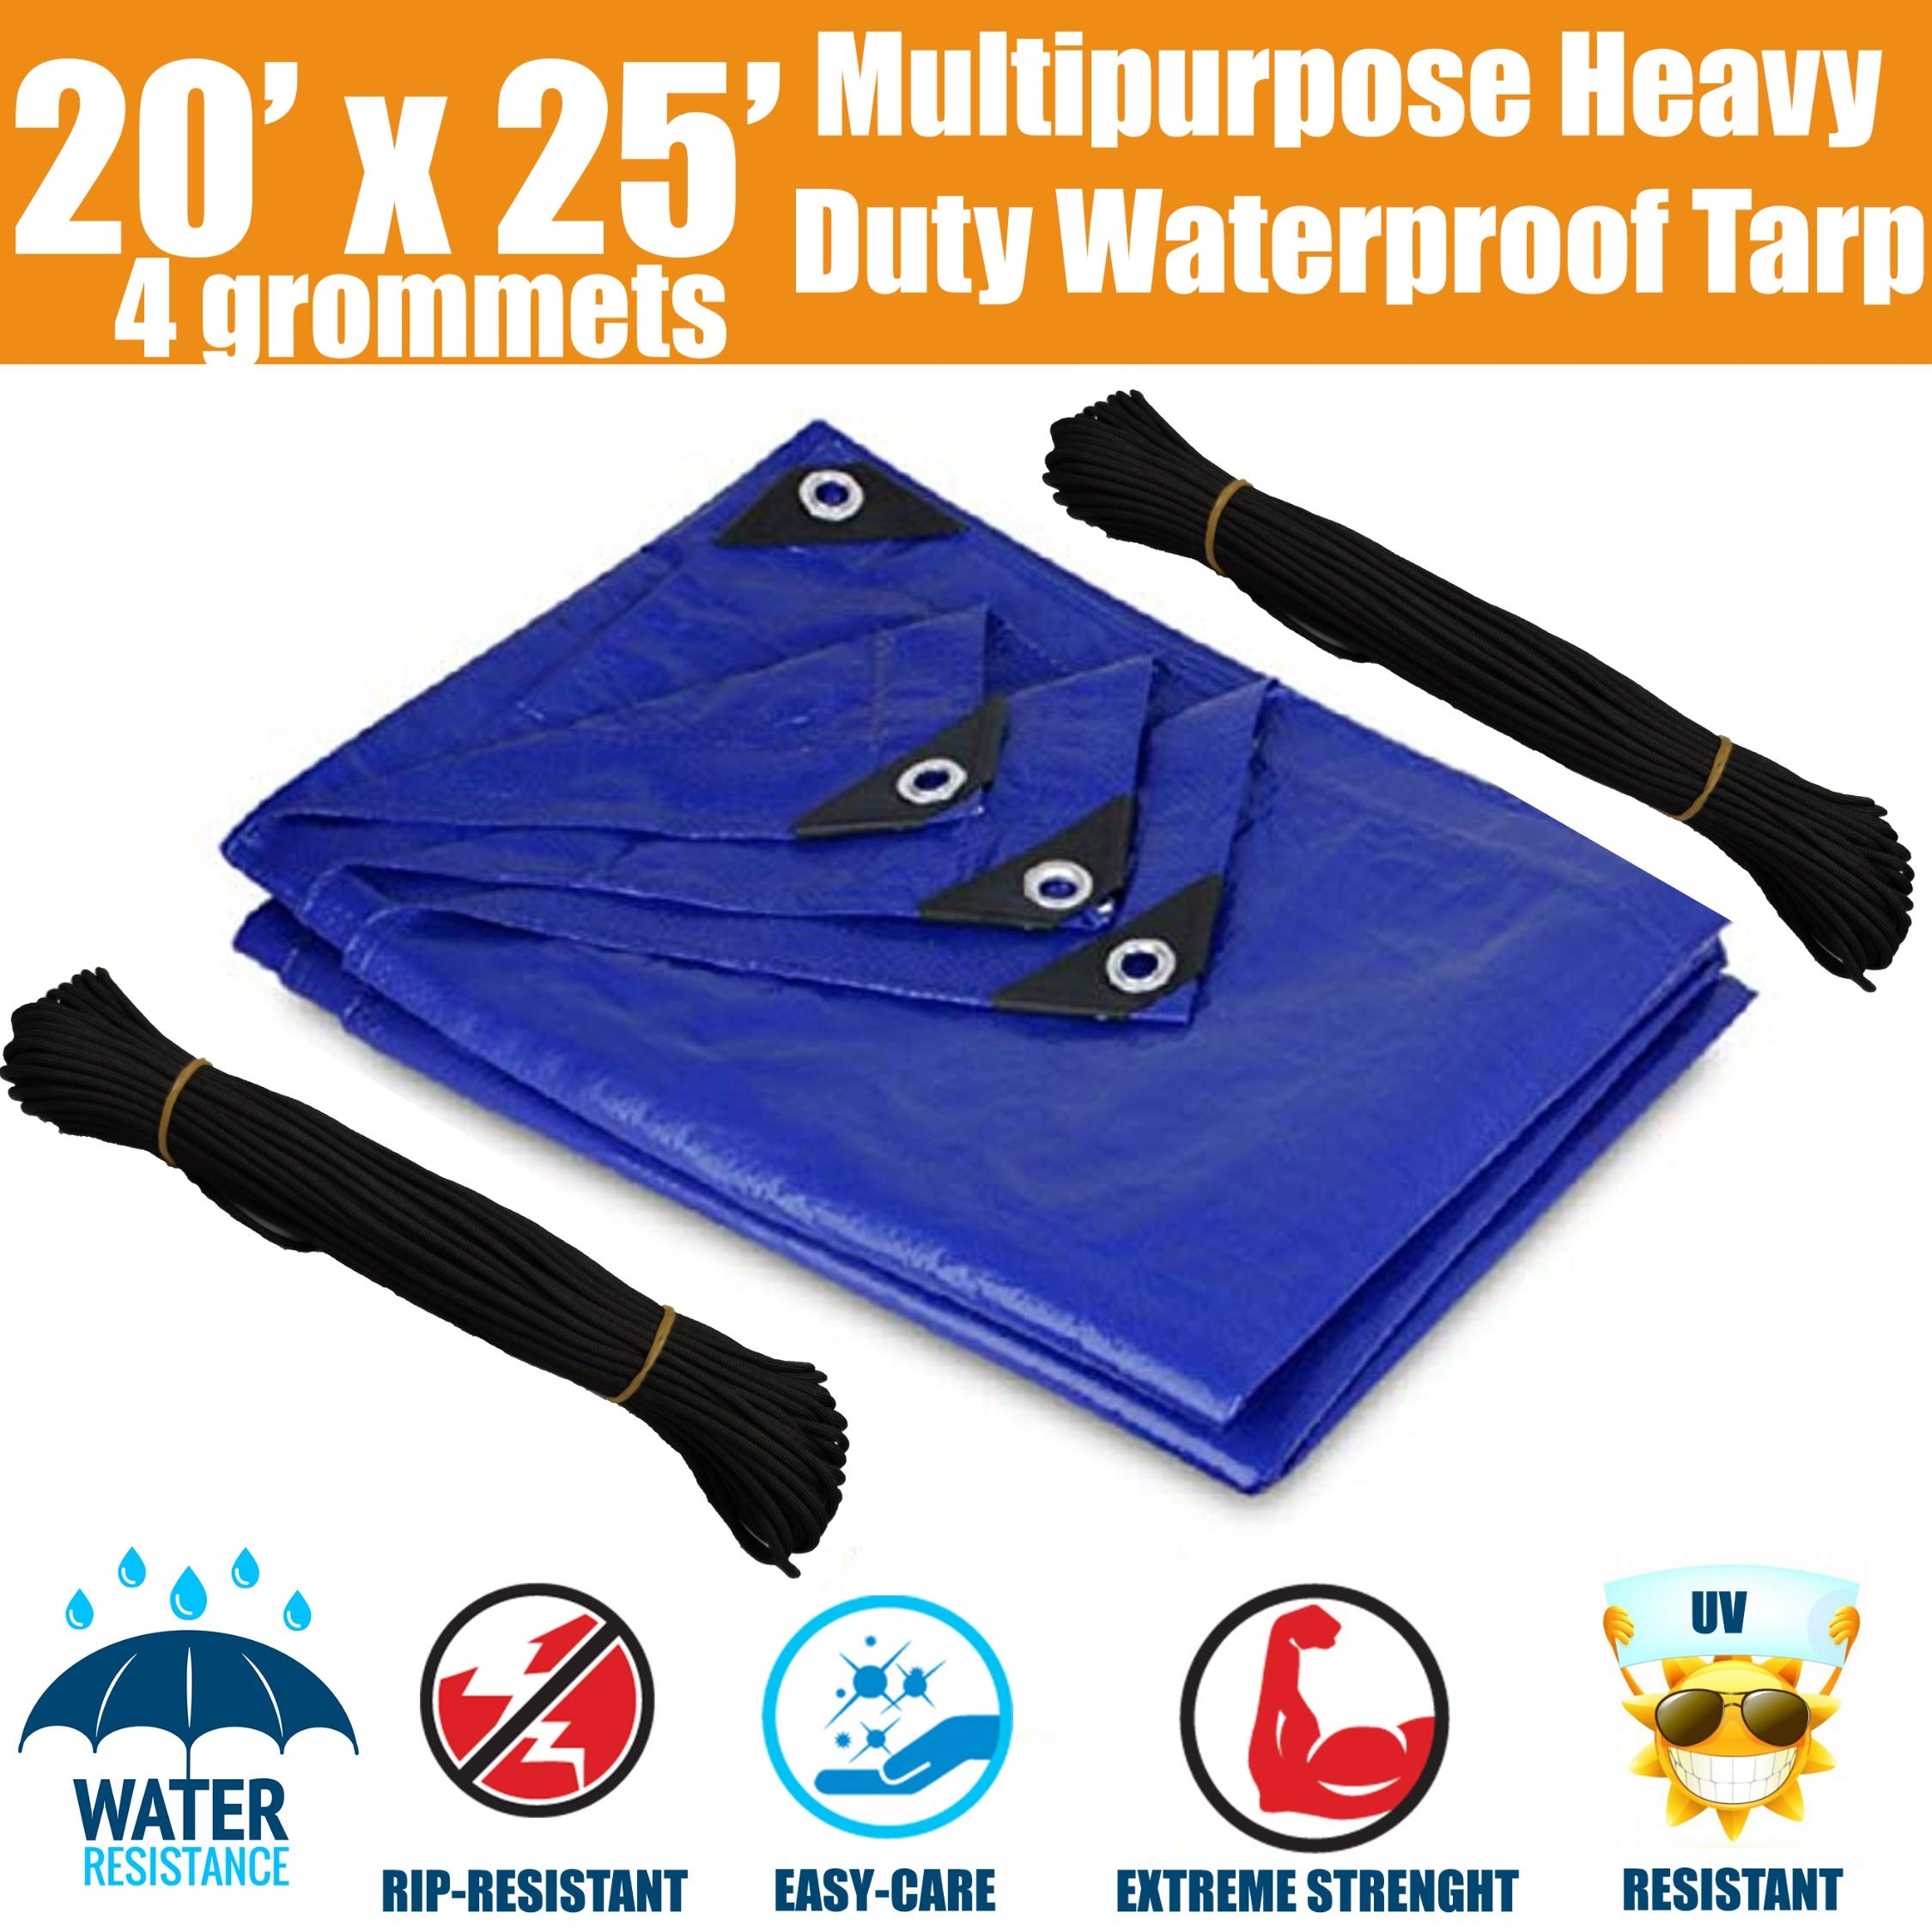 20'x25' Heavy Duty Waterproof Tarps - Multi-Purpose Blue Tarpaulin with 4 Grommets, Reinforced Edges and Nylon Paracord for Outdoor Rain Shelter, Ground Cover, Boat, RV or Pool Cover by N1Fit